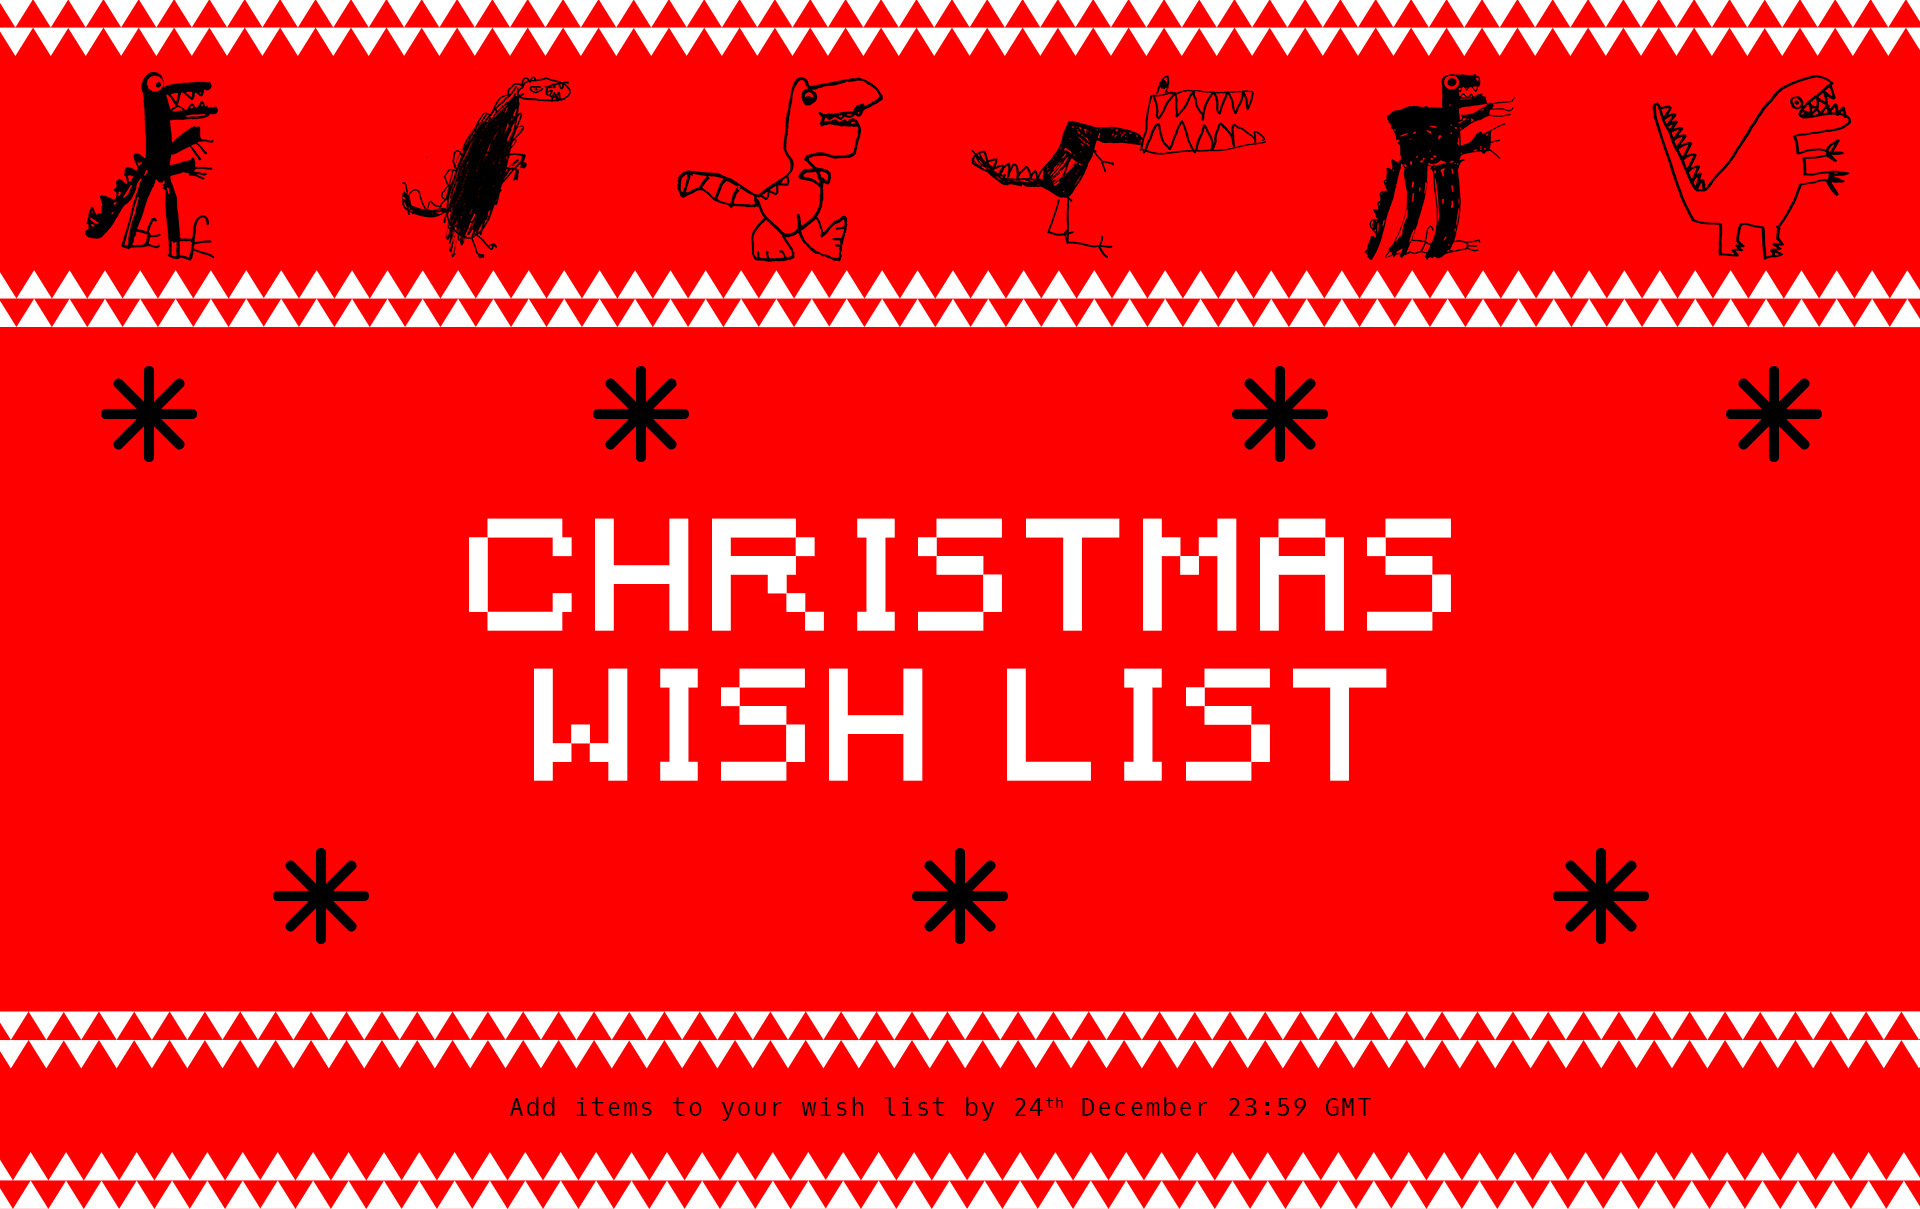 Spitfire Audio's Christmas Wish List returns, get your free gift!